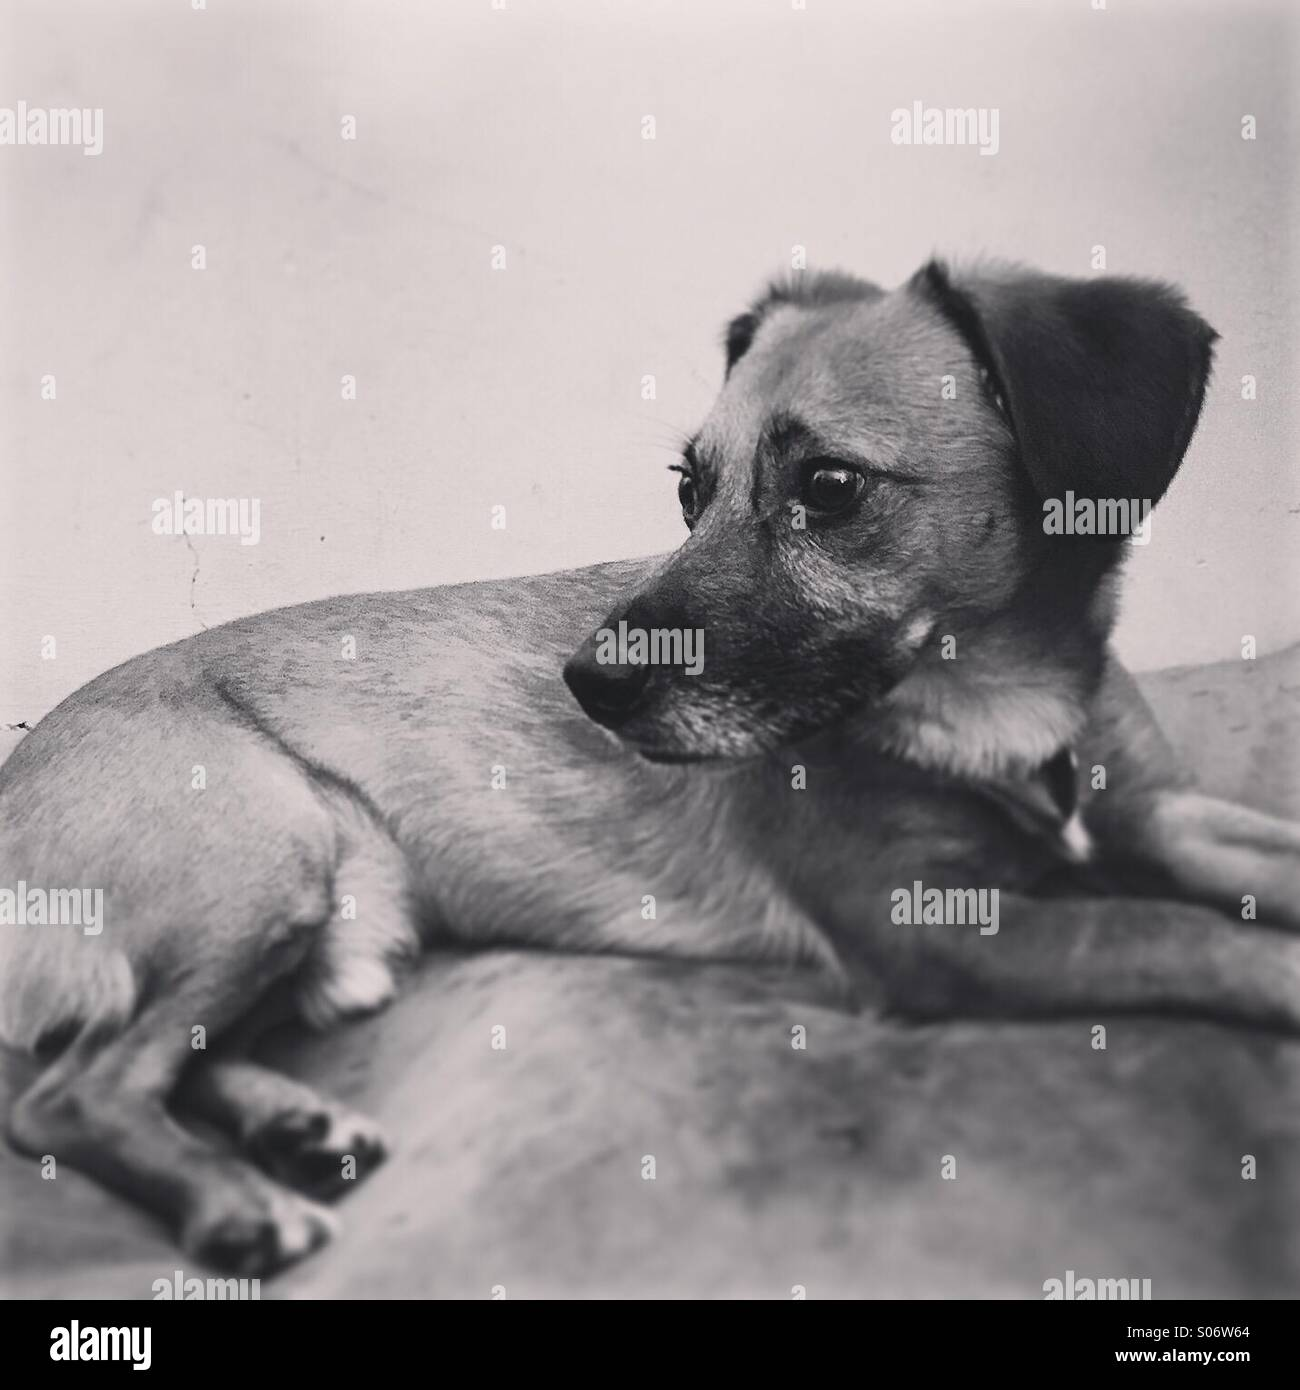 black and white portrait of a dog - Stock Image